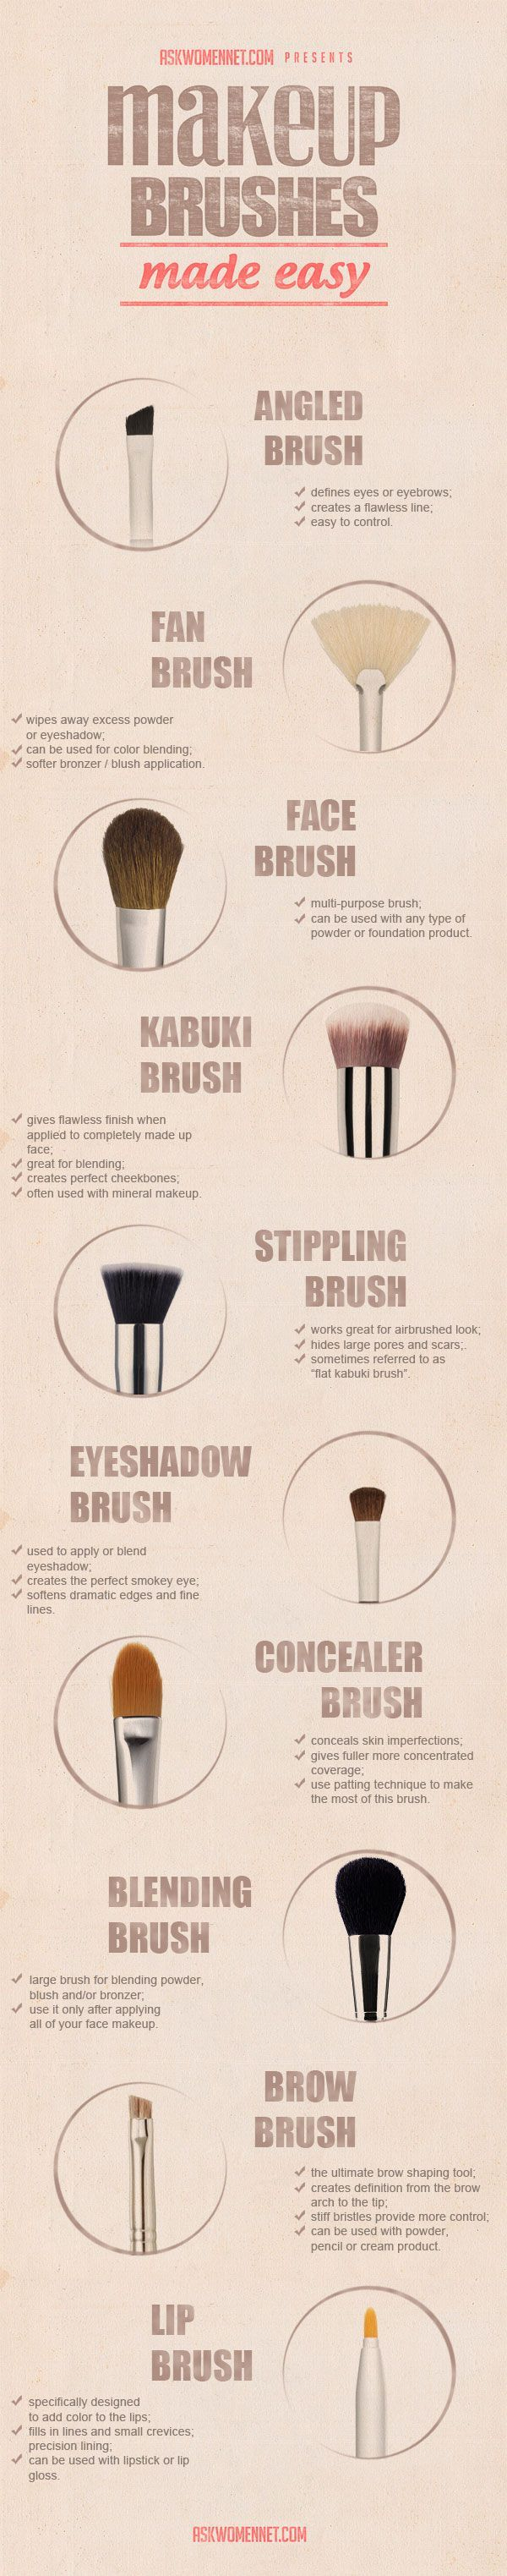 Makeup Brushes Made Easy [INFOGRAPHIC] #infographic #beauty #makeup #beautytips #brushes #makeupbrushes #infographics #women #womeninterests #maquillage